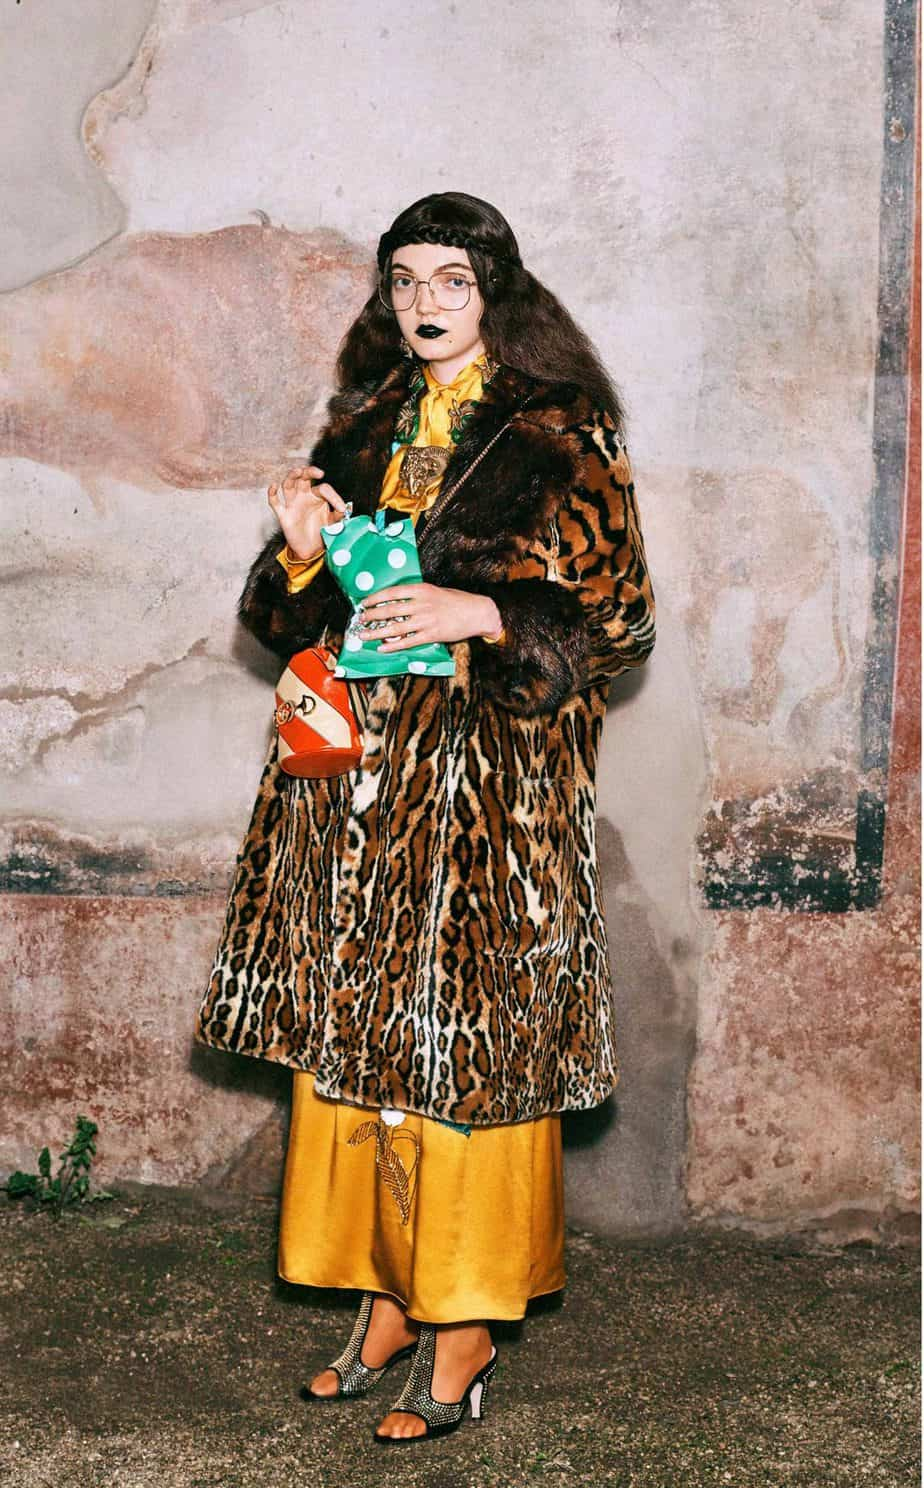 GUCCI, FALL 2019. WOMEN'S FASHION, Photographer Harmony Korine, Art Director, Christopher Simmonds - 48